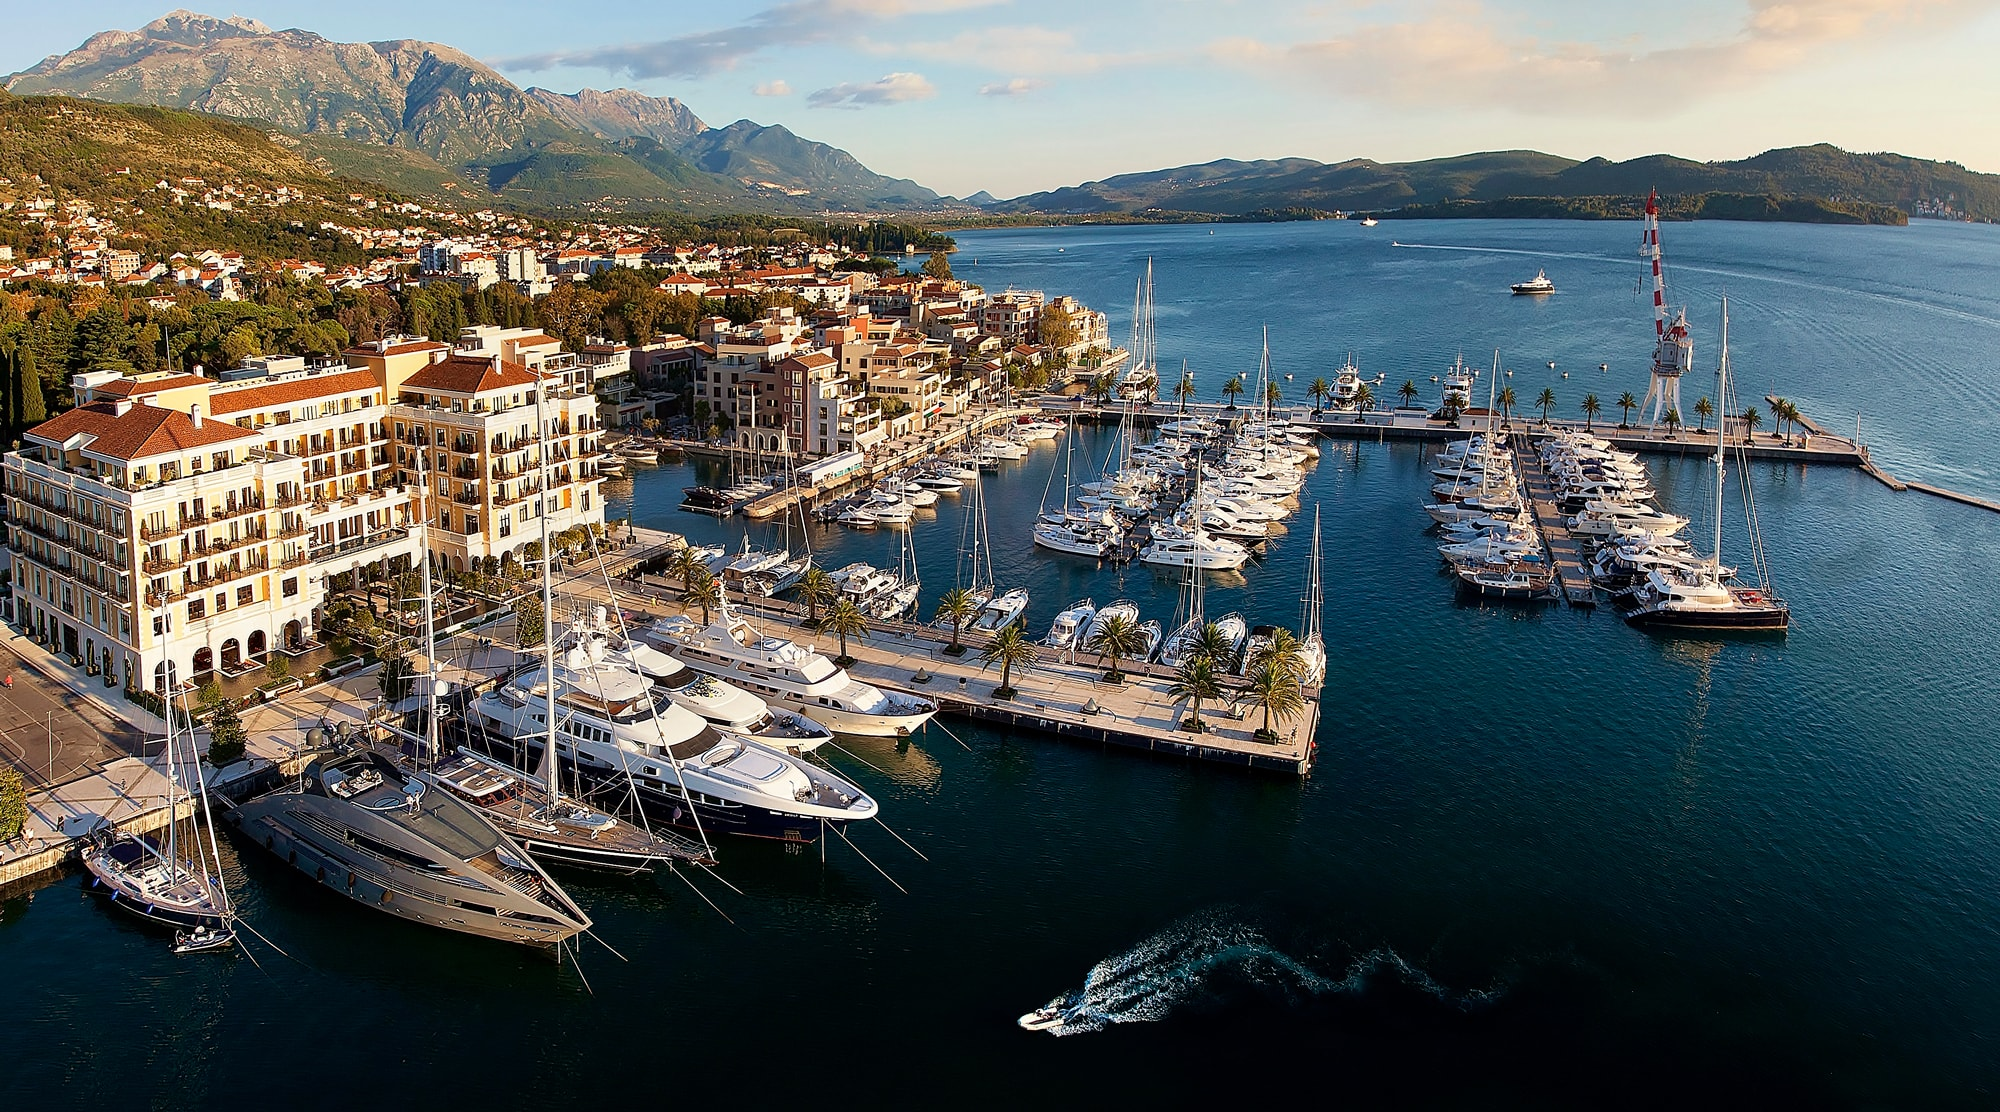 Tivat, Montenegro - Monterrasol private tours to Montenegro. Travel agency offers custom private car tours to see Montenegro in Montenegro. Order custom private tour to Montenegro with departure date on request.